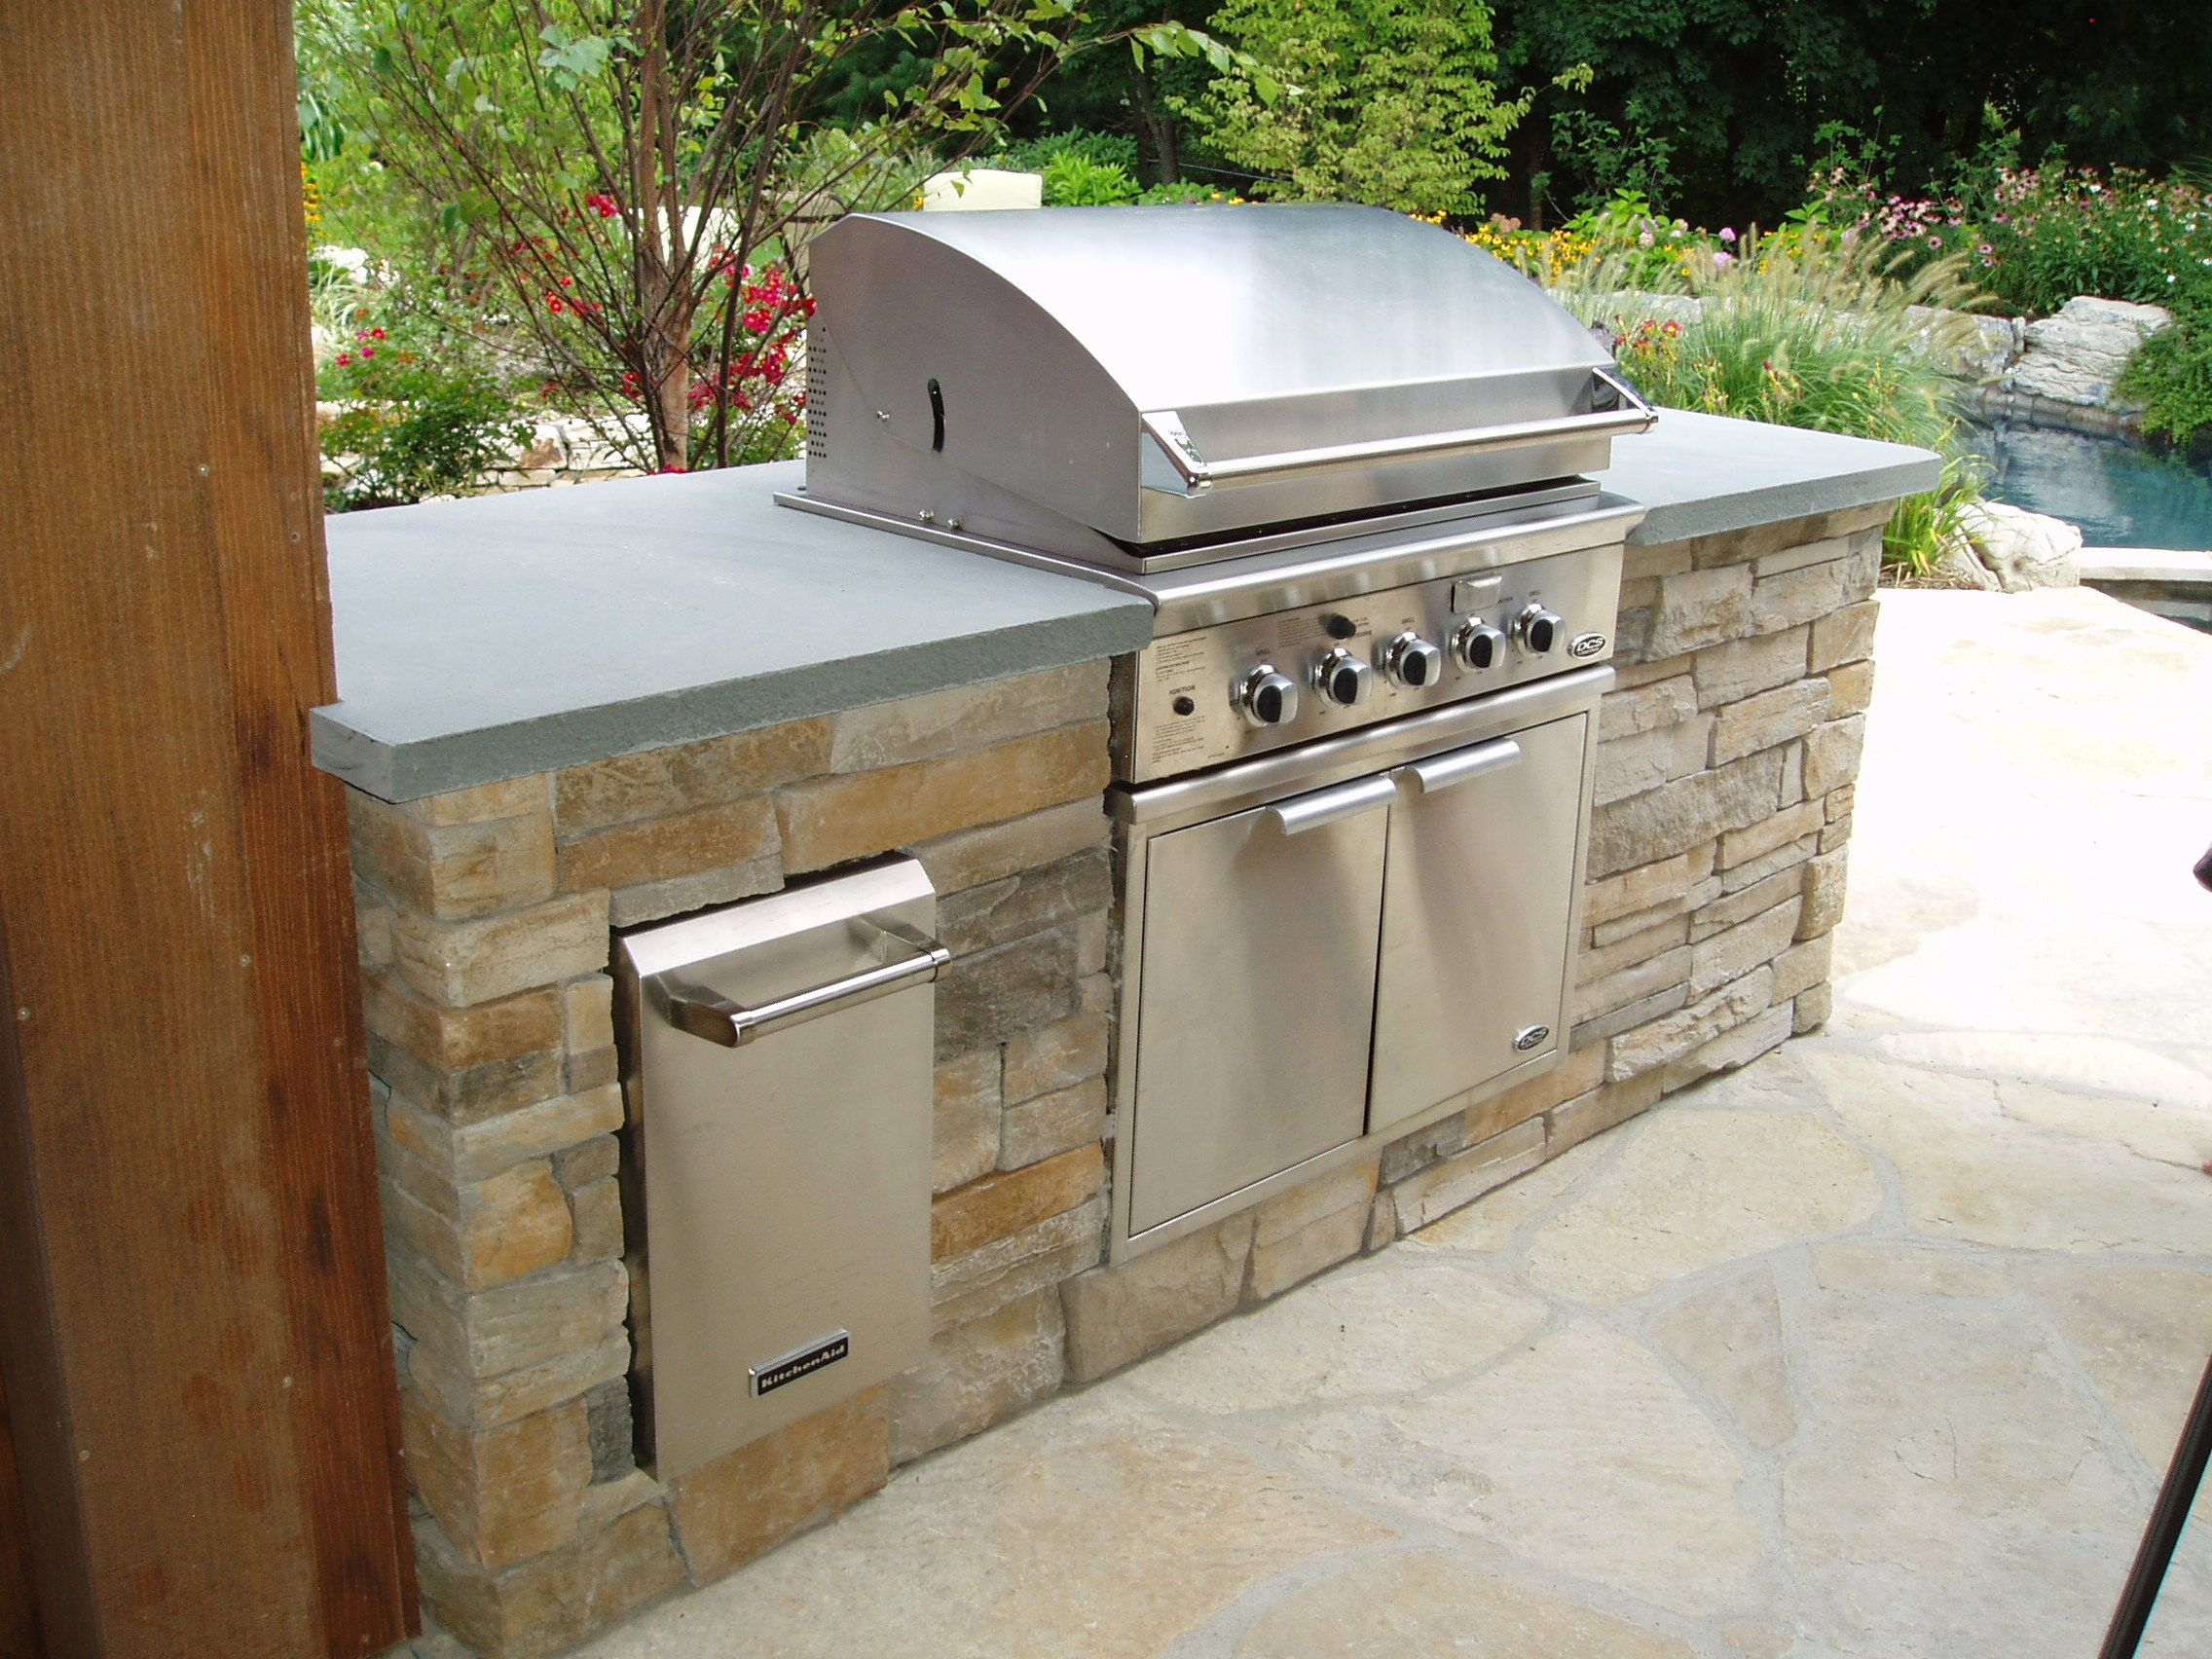 Outdoor kitchen grill find grill outdoor cooking is very for Outdoor kitchen equipment